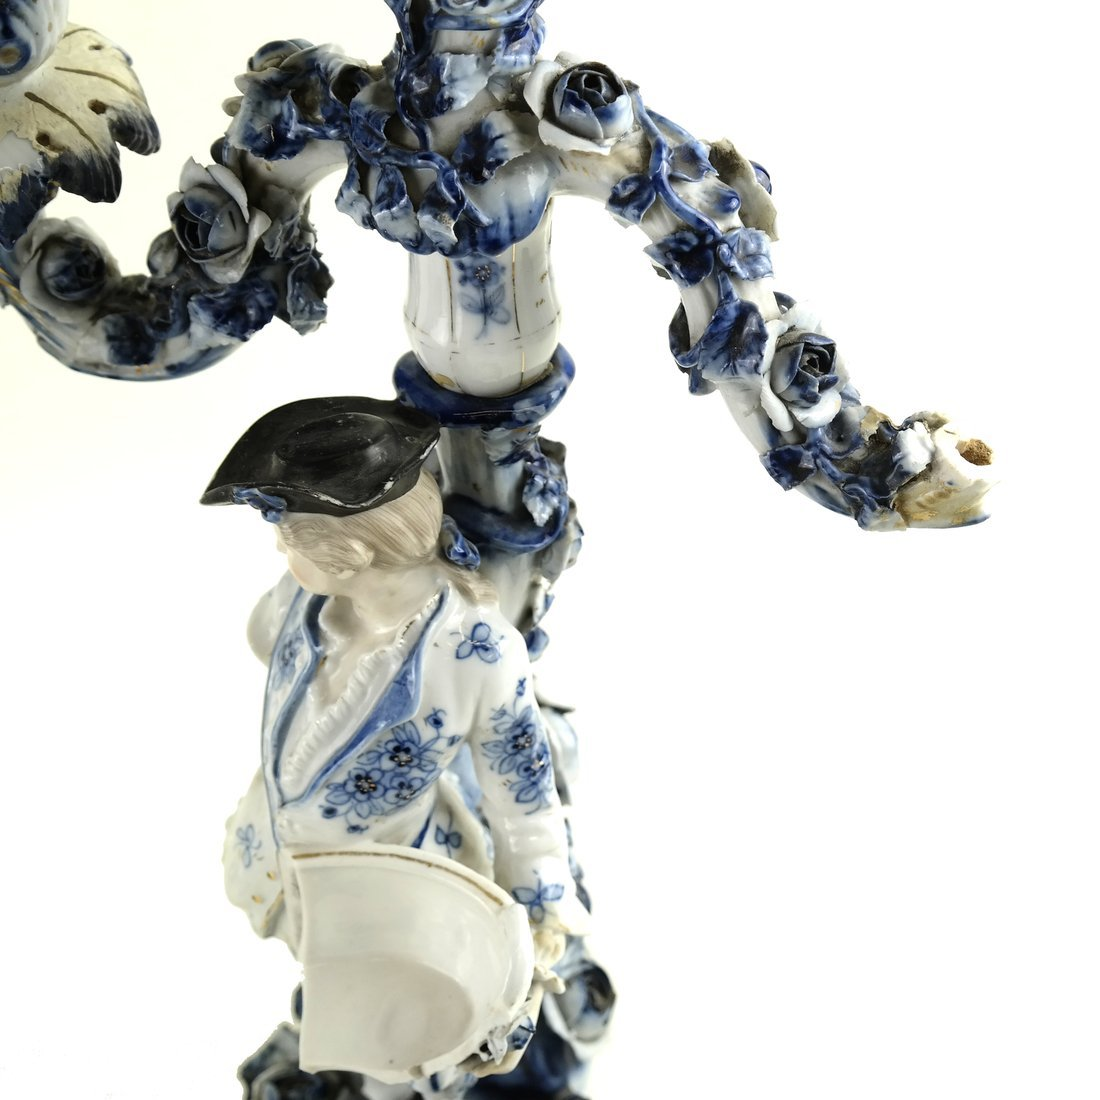 8 Asst. Blue and White Decorated Objects - 4